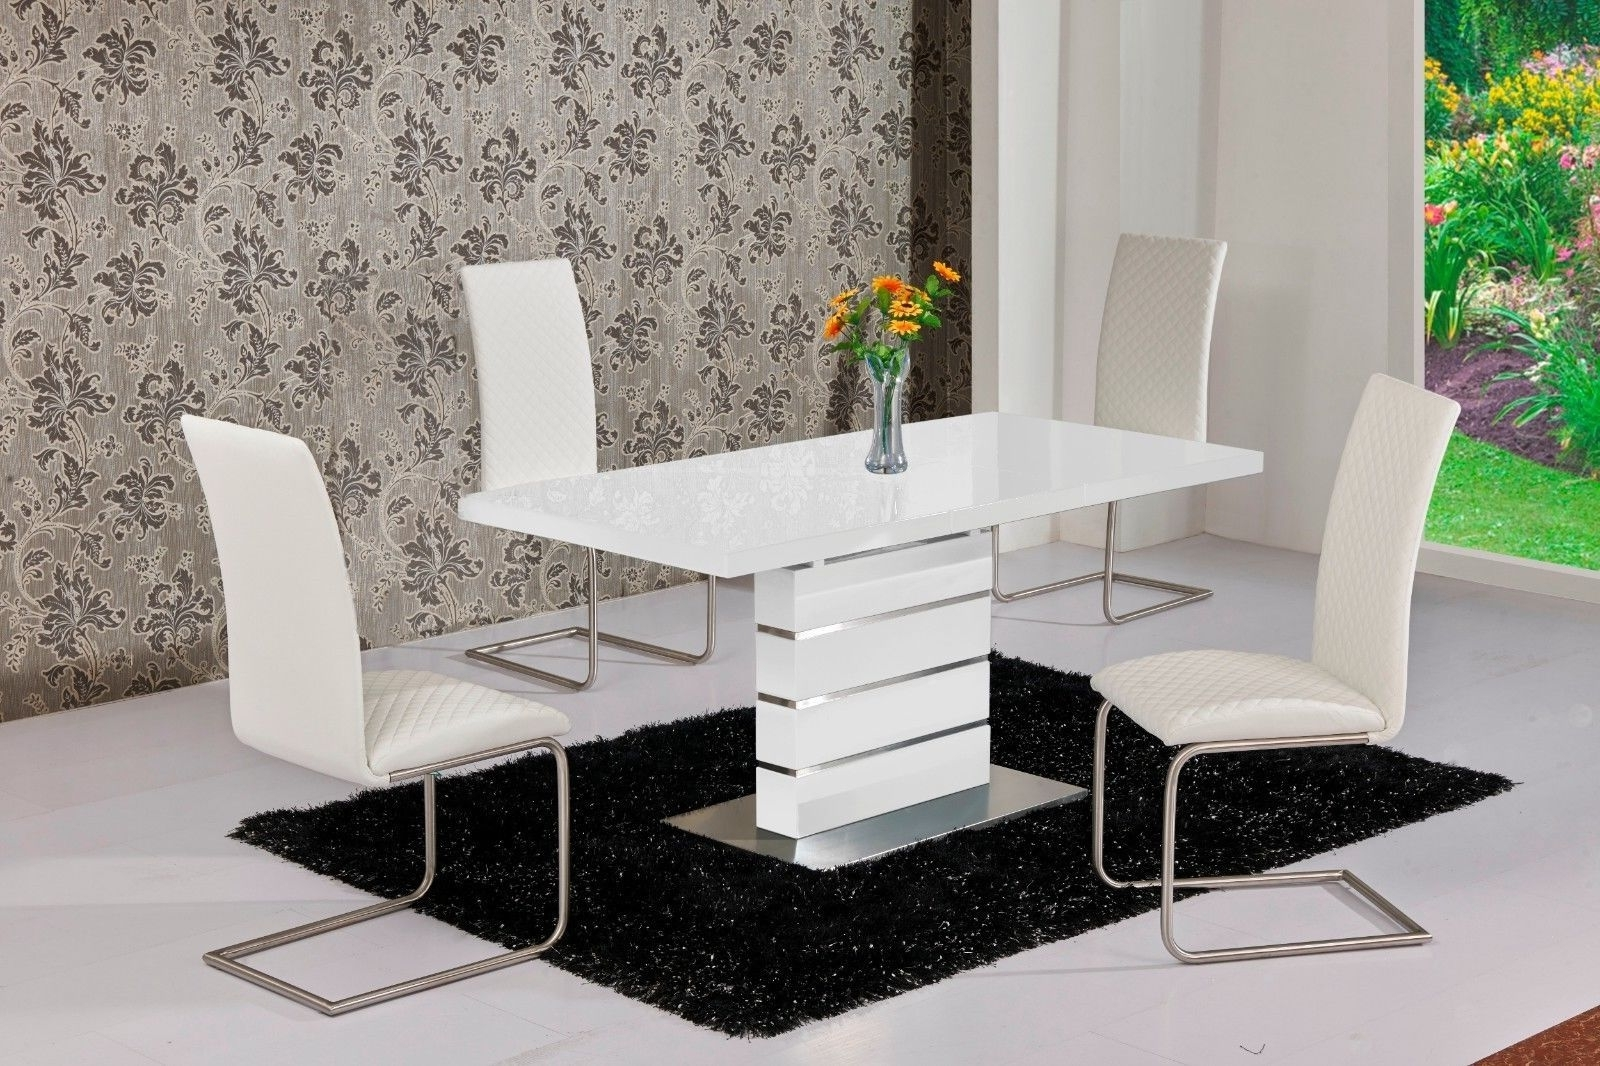 Black Extendable Dining Tables And Chairs Within Most Up To Date Mace High Gloss Extending 120 160 Dining Table & Chair Set – White (Gallery 1 of 25)